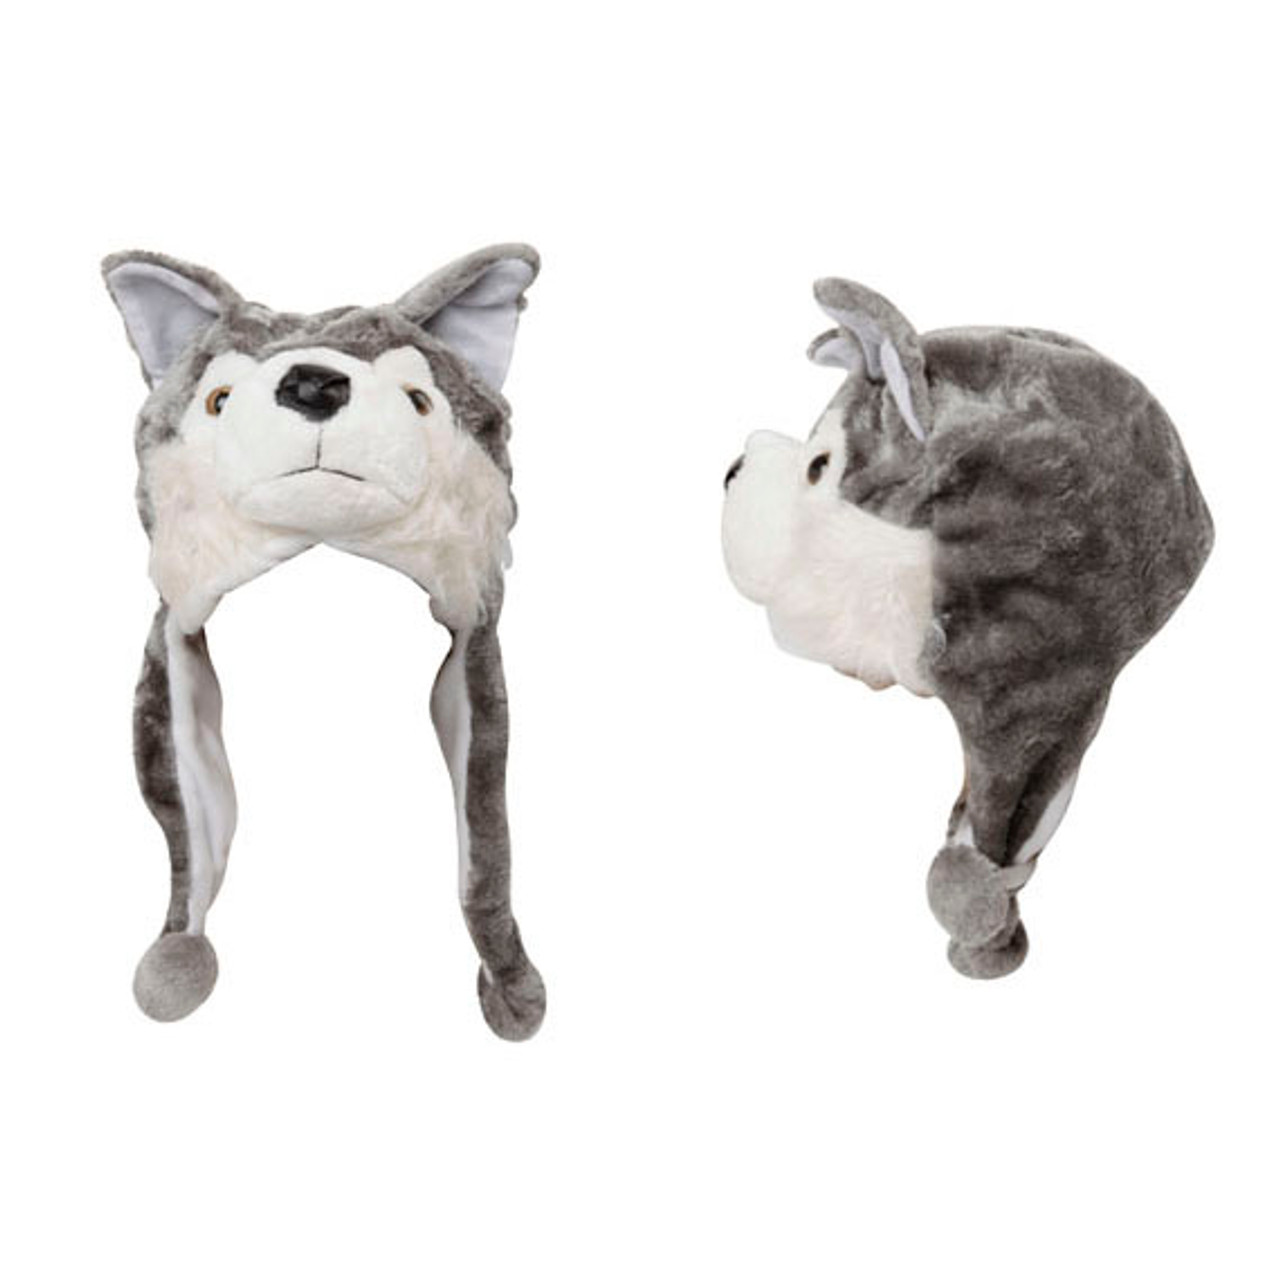 Wholesale Wolf Animal Hat A103 (1 pc.)